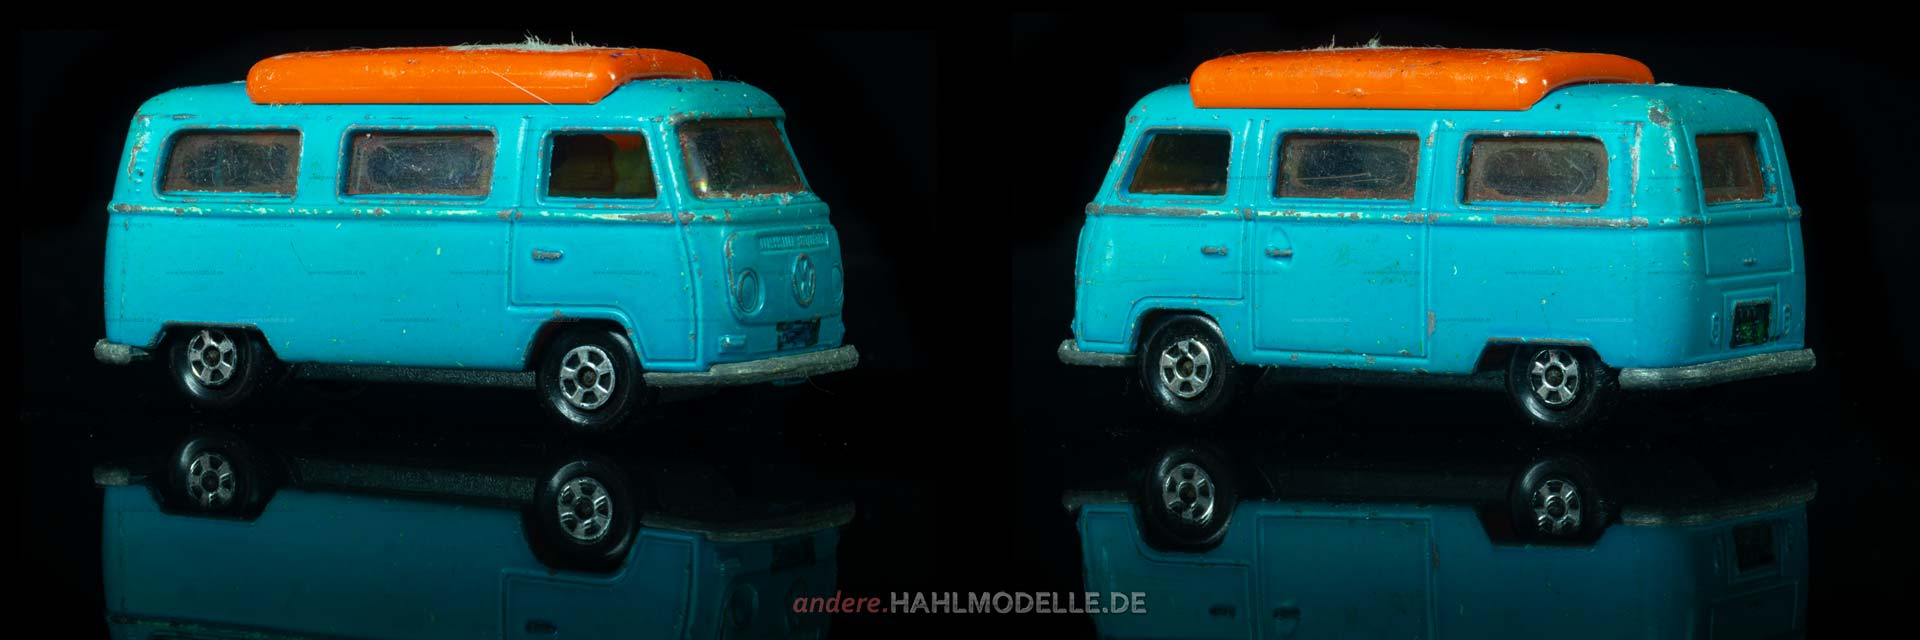 "Volkswagen Bulli (Typ 2 T2a) | Bus | Lesney Products & Co. Ltd. | 1:51 | Matchbox Superfast ""Volkswagen Camper"" 